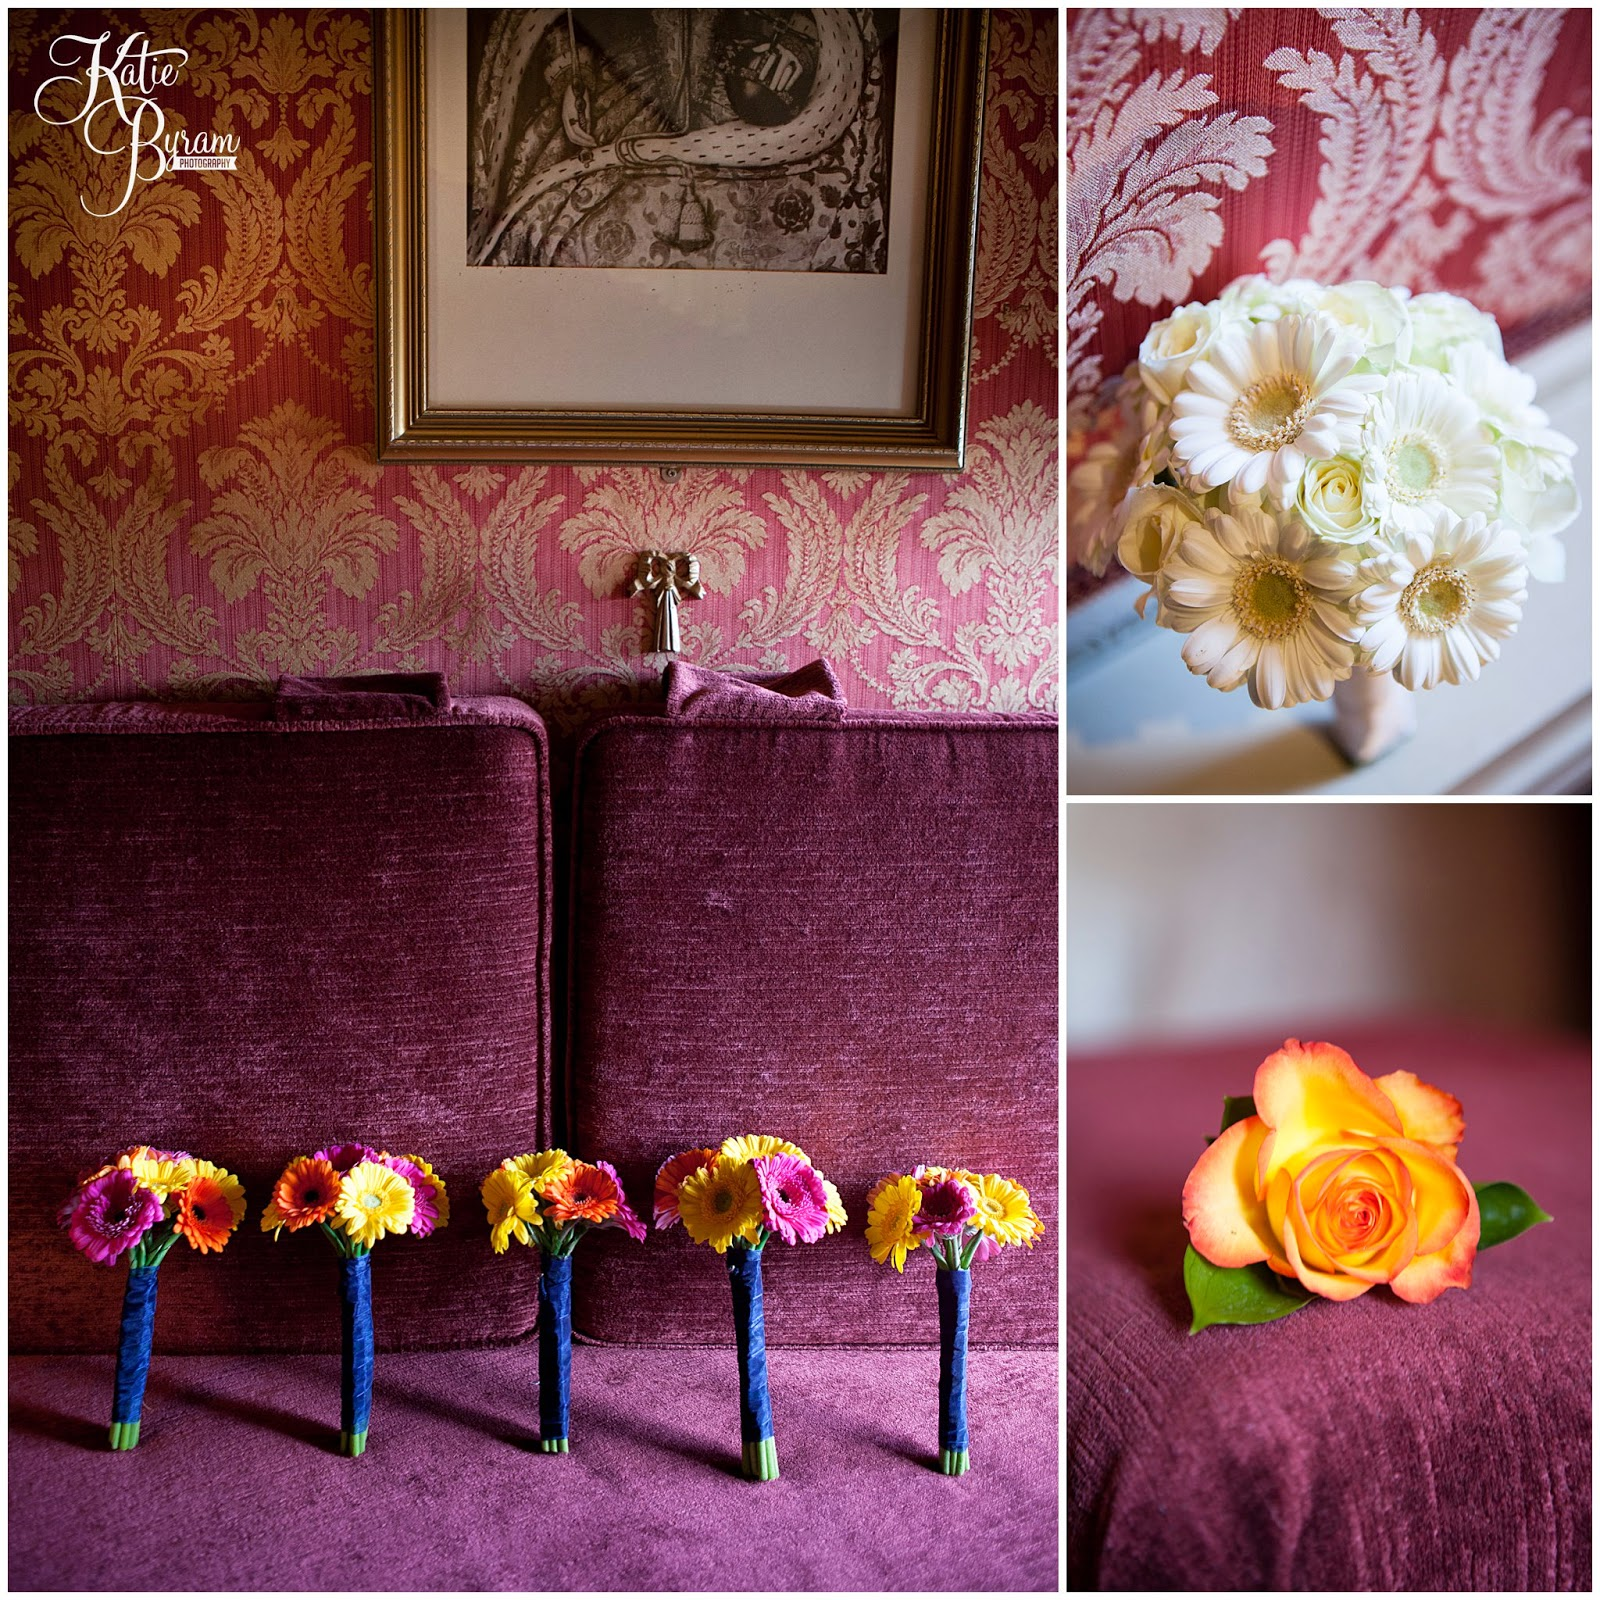 gerbera wedding bouquet, colourful wedding flowers, lumley castle wedding, durham wedding, katie byram photography, diane harbridge, carli peirson make up, the big event make up, wedding venues north east, northumberland wedding, quirky wedding photography, travel themed wedding, castle wedding north east, newcastle wedding, chester-le-street